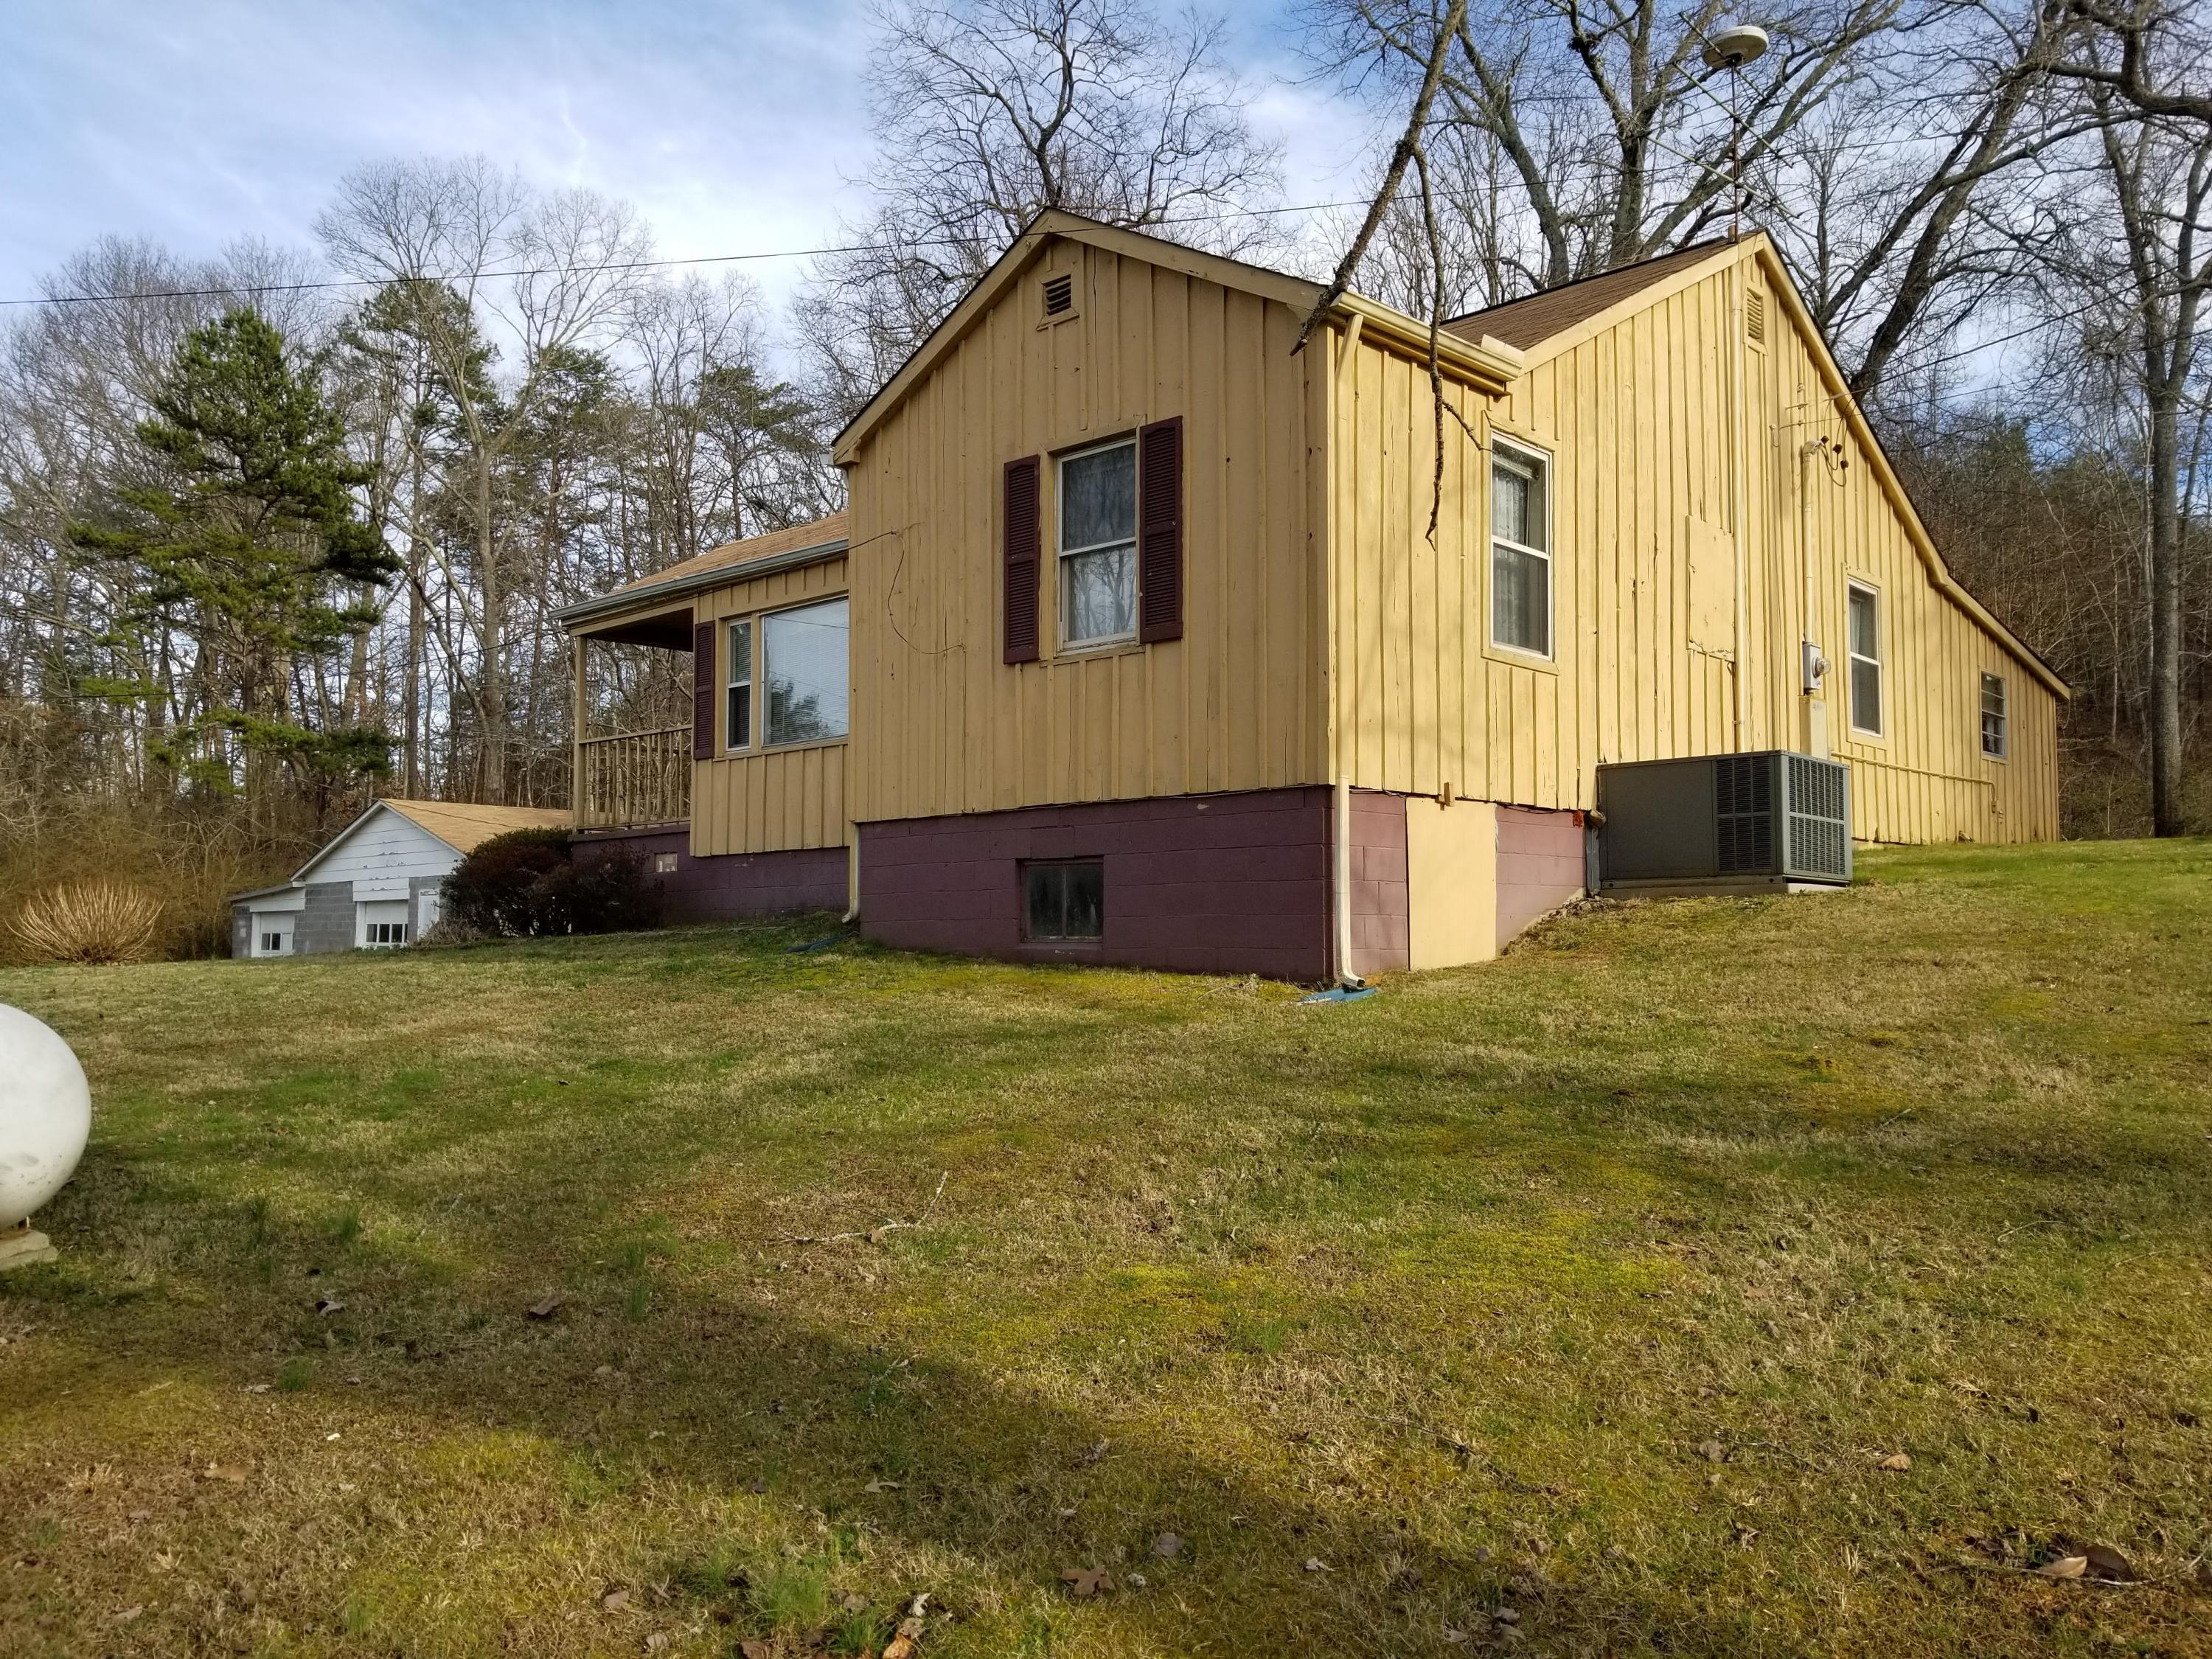 8907 W Simpson Rd, Knoxville, TN 37920